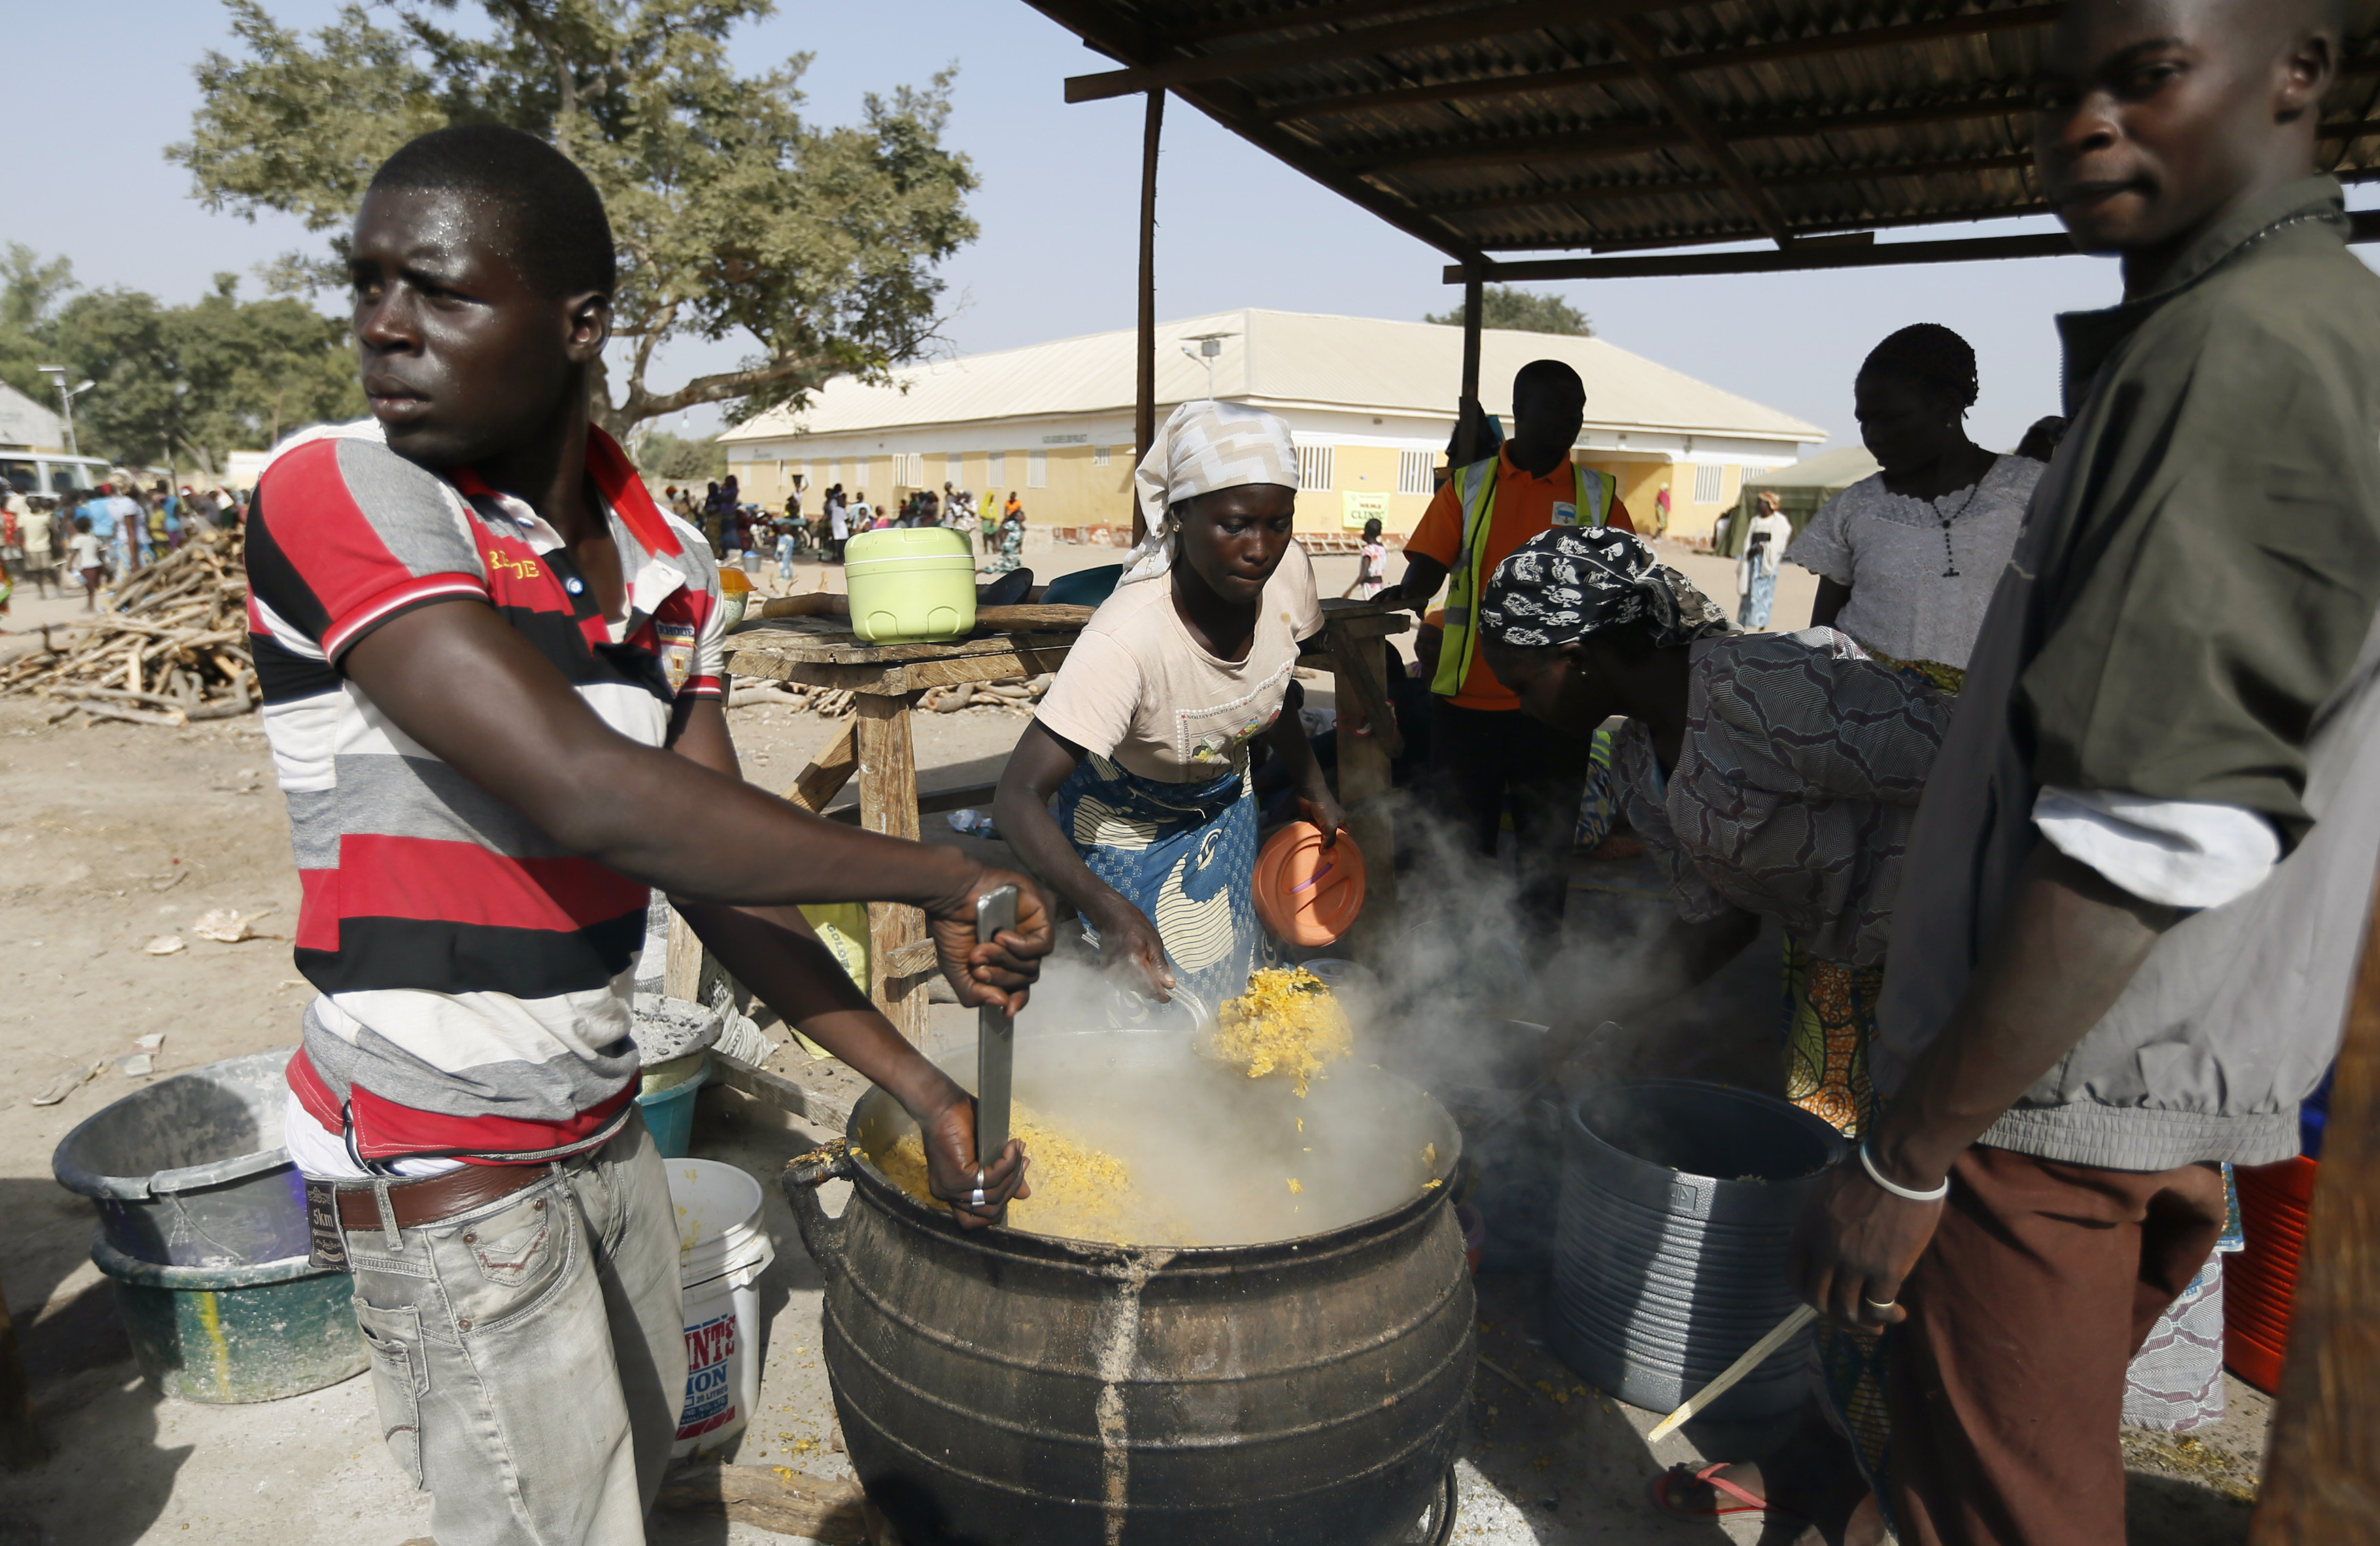 People fleeing Boko Haram violence in the northeast region of Nigeria cook food at Maikohi secondary-school camp for internally displaced persons in Yola, Adamawa State, on Jan. 13, 2015